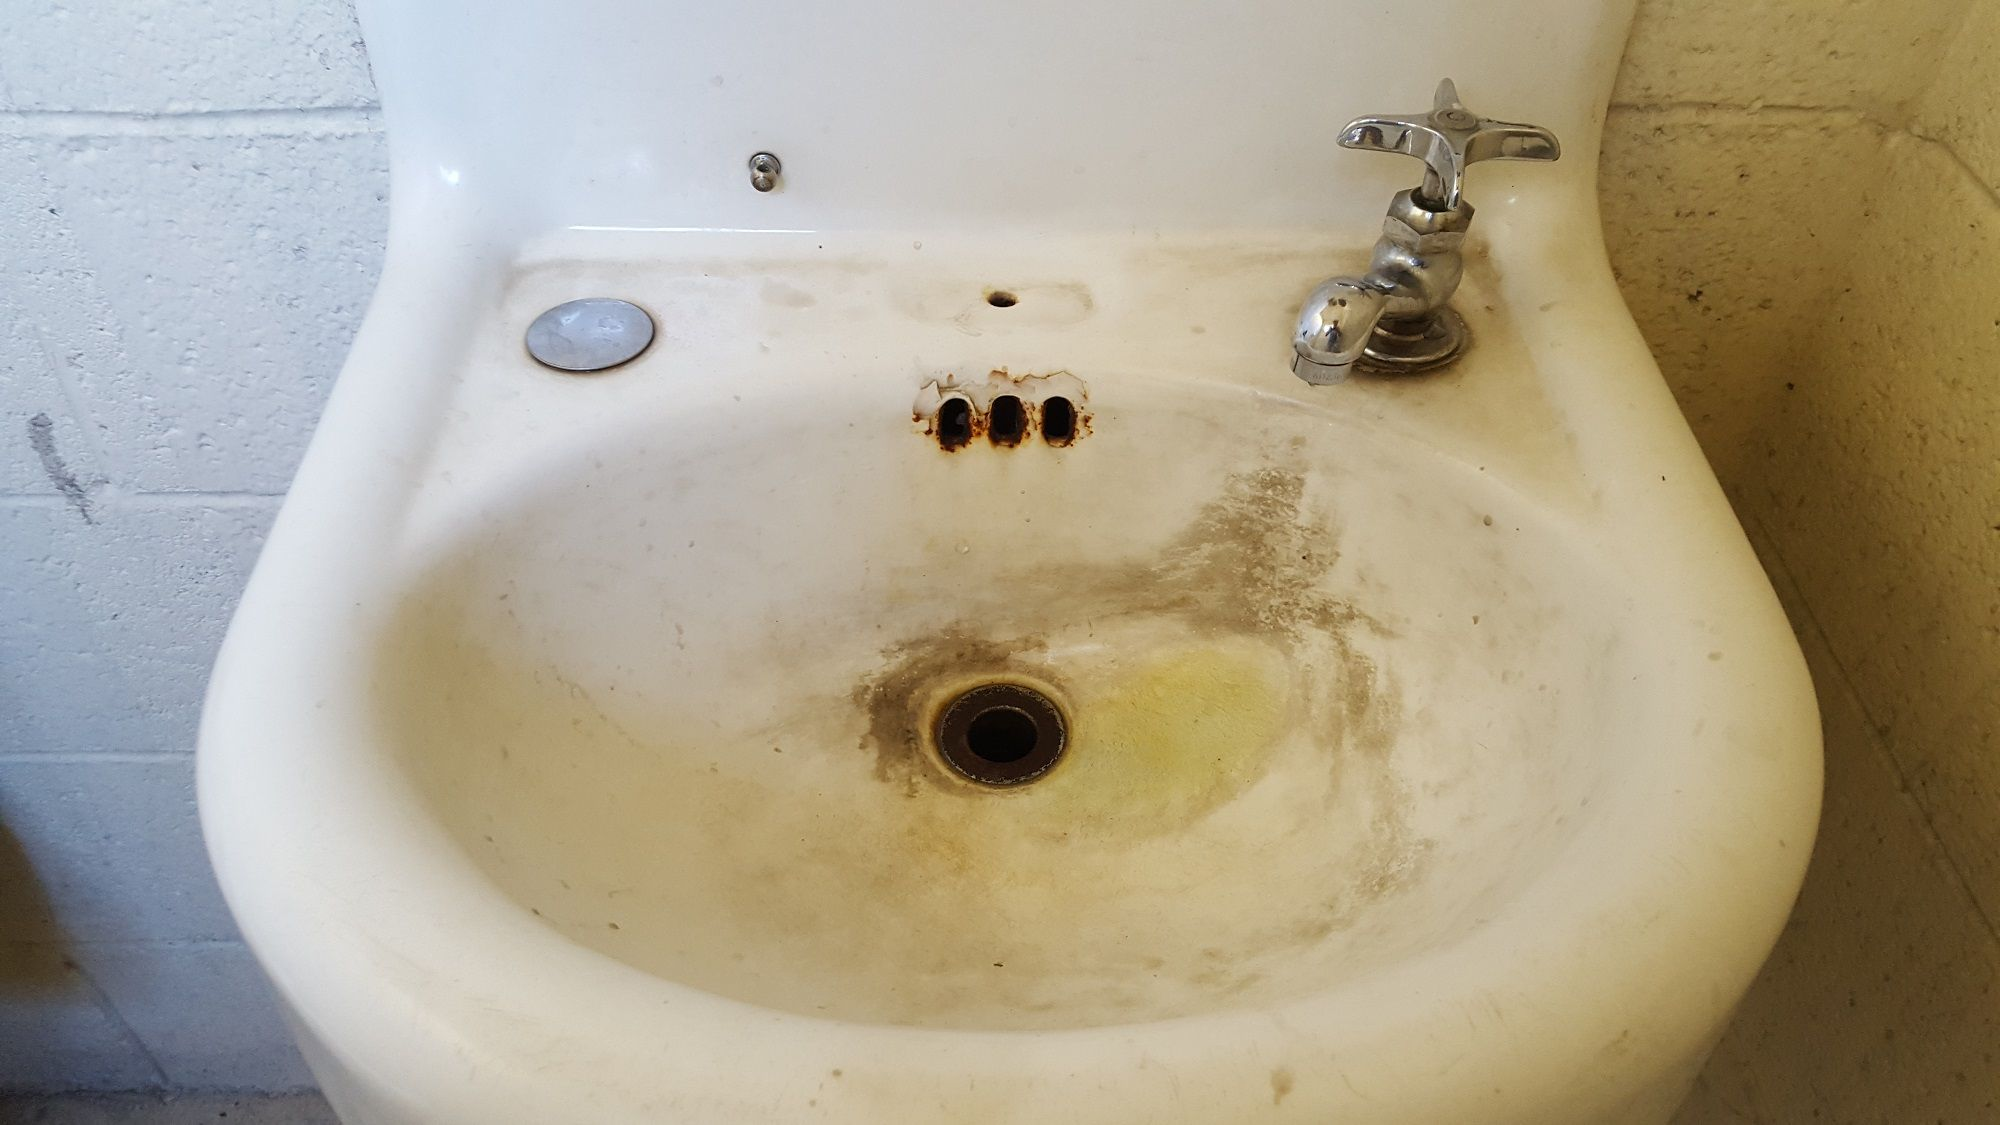 50 Year Of Buildup Grime On Bathroom Sink Mechanics Shop We Were